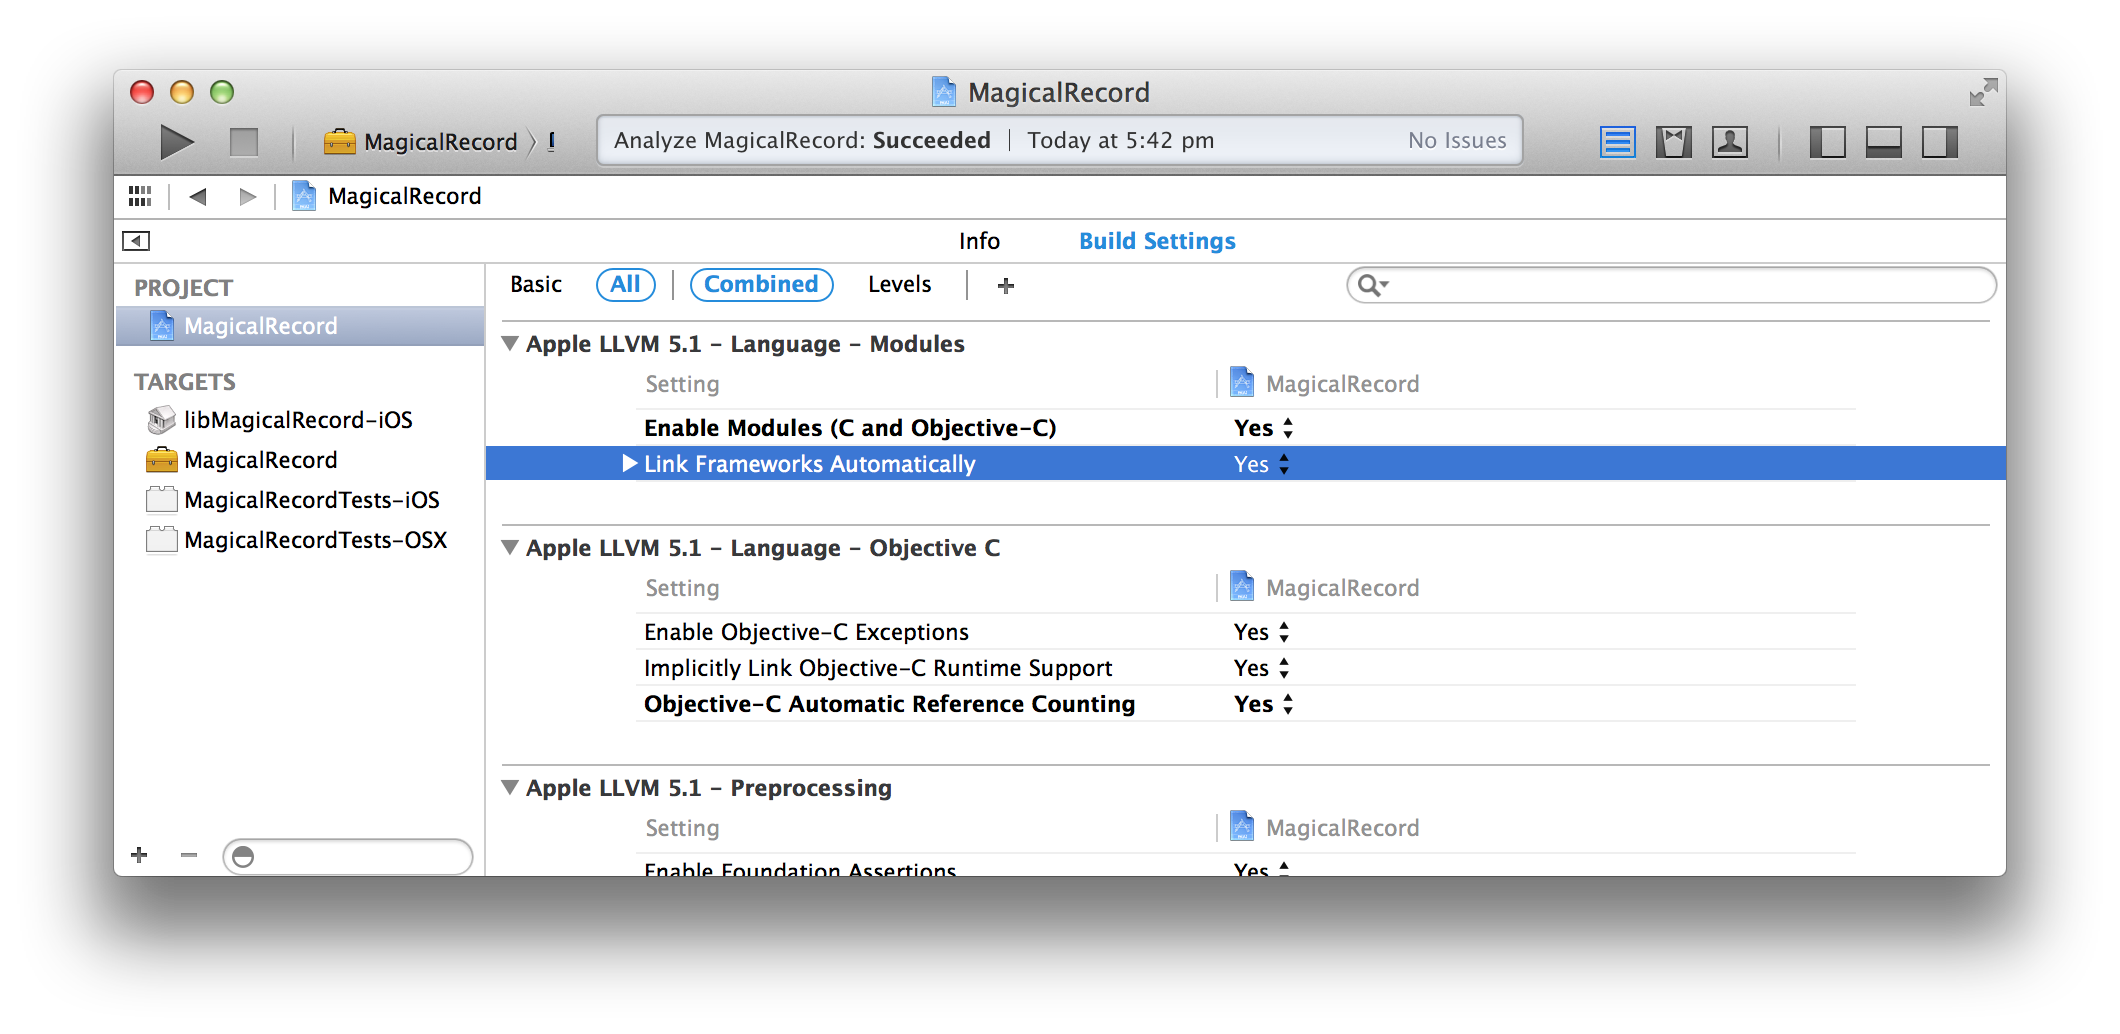 Xcode project settings showing 'Link Frameworks Automatically' setting